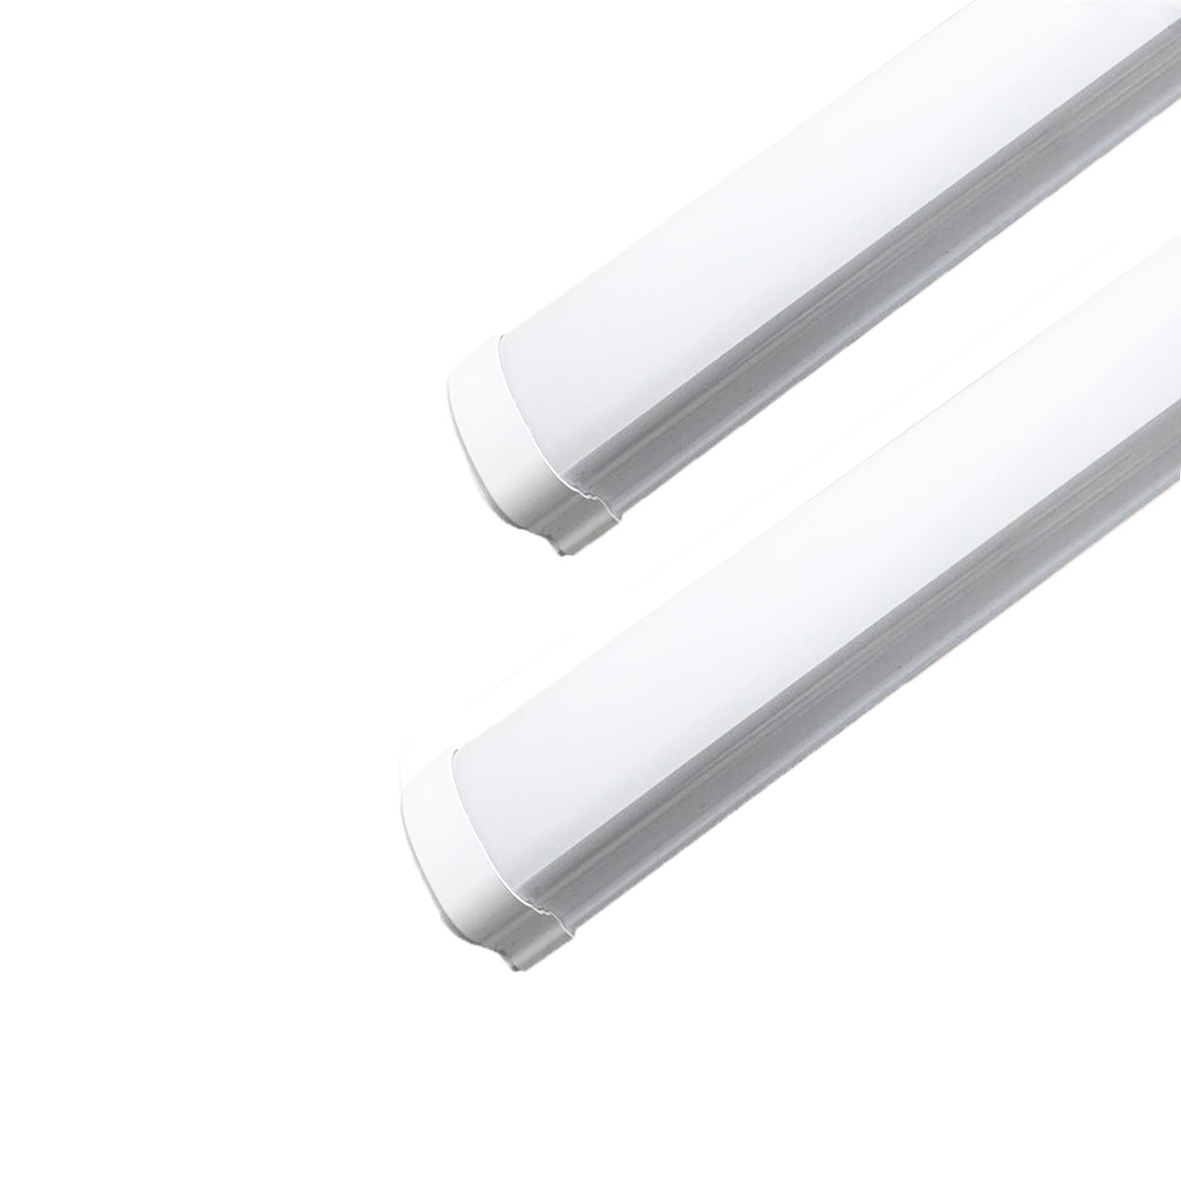 Plafoniera LED 60cm 18w 220v bordo Bianco alto IP65 P51-18w